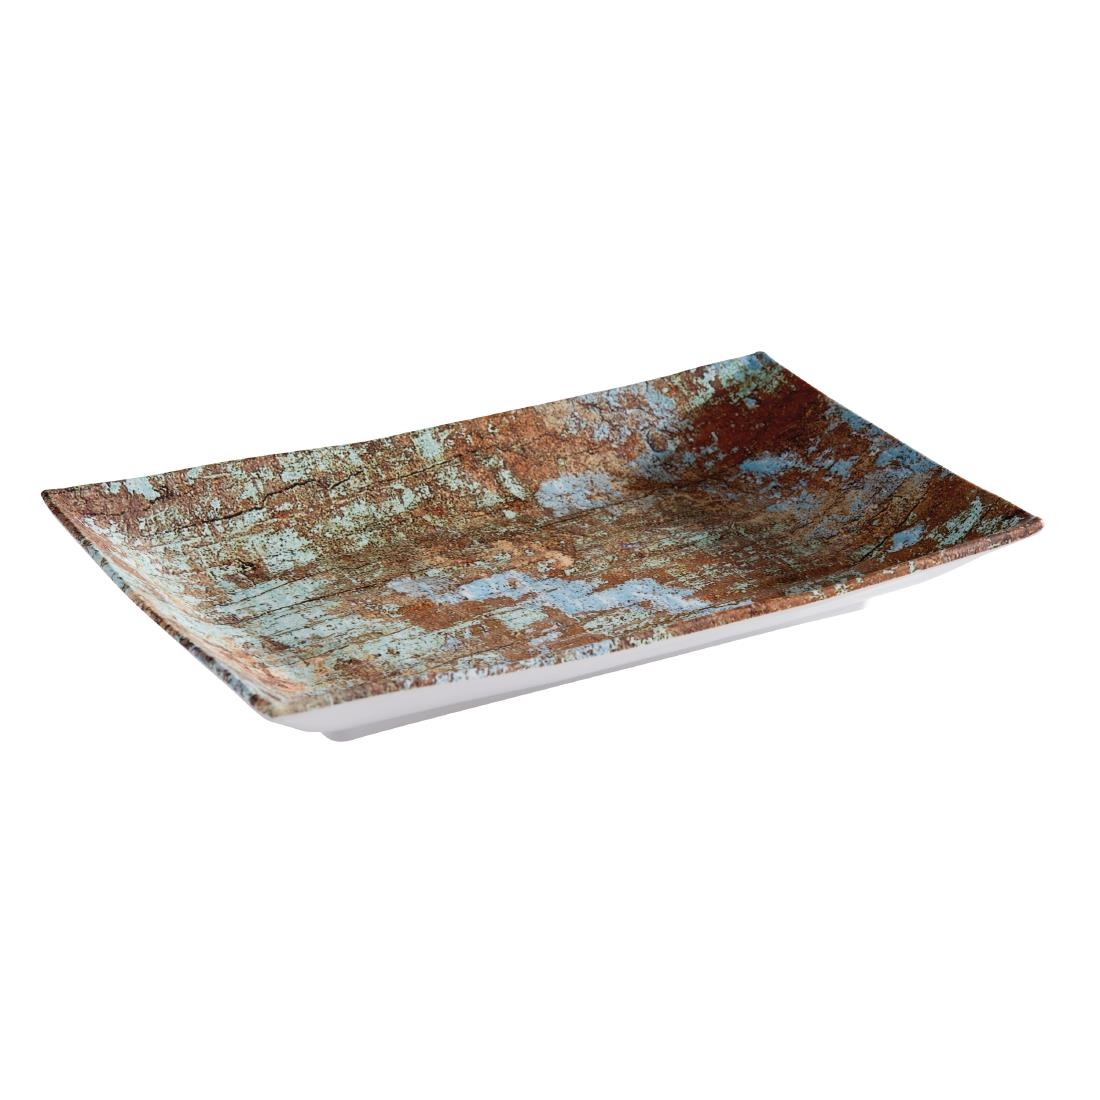 APS Aquaris Rectangular Platter 210 x 130mm